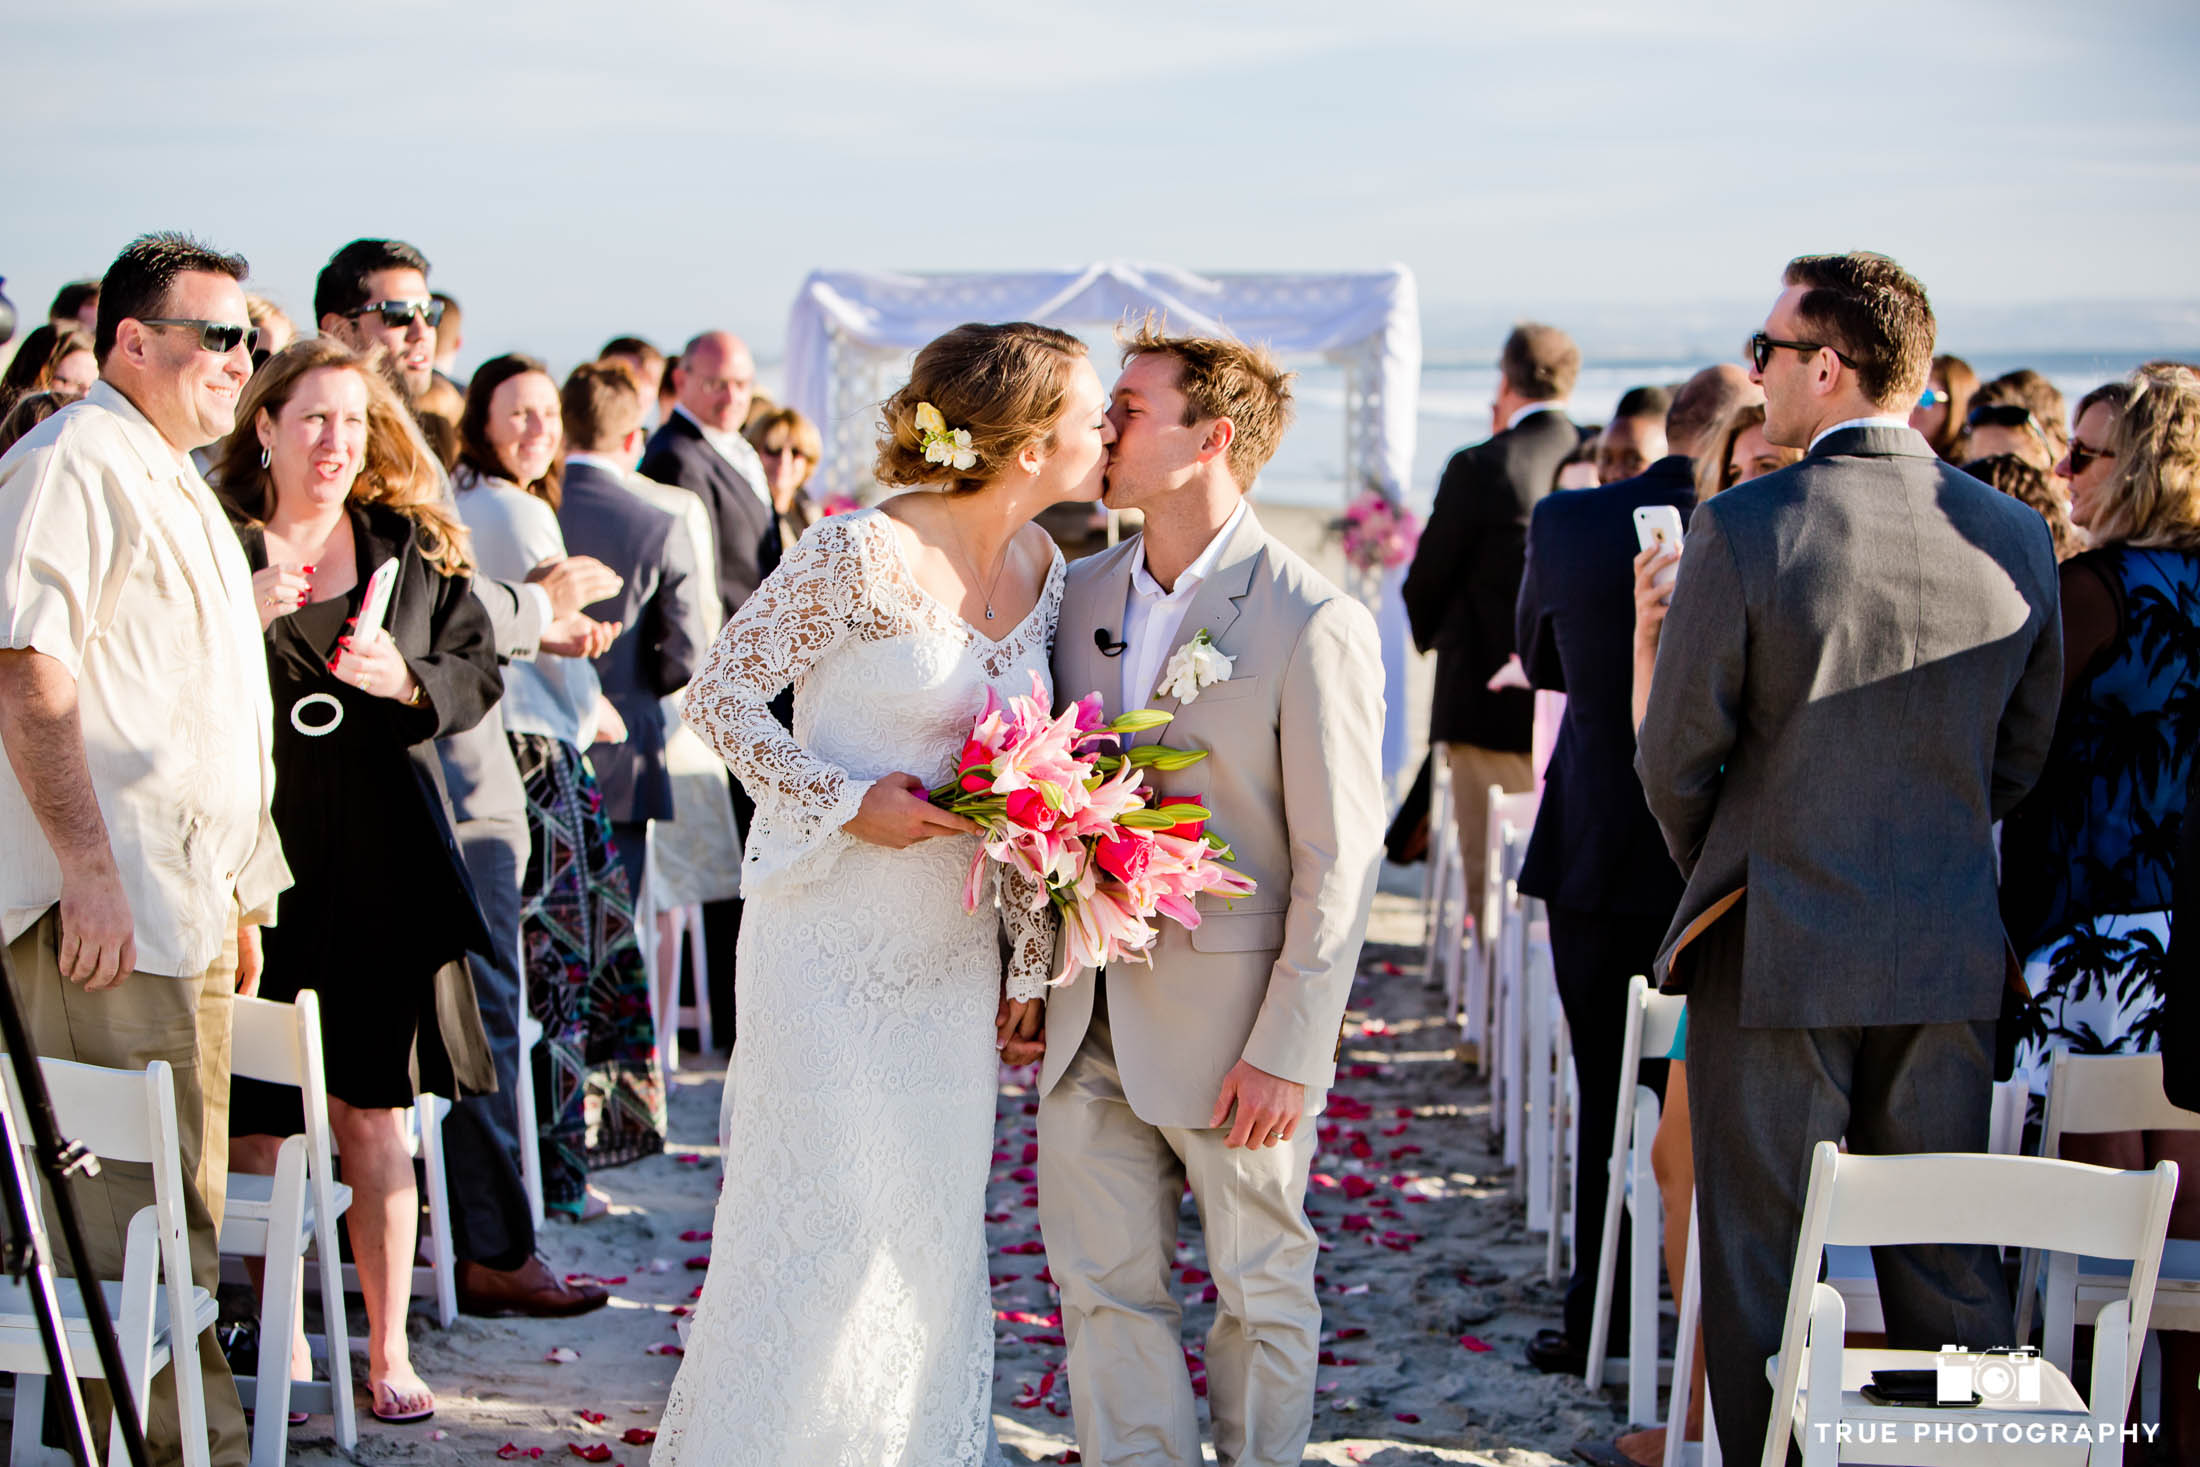 Coronado, California wedding couple kissing at beach wedding ceremony